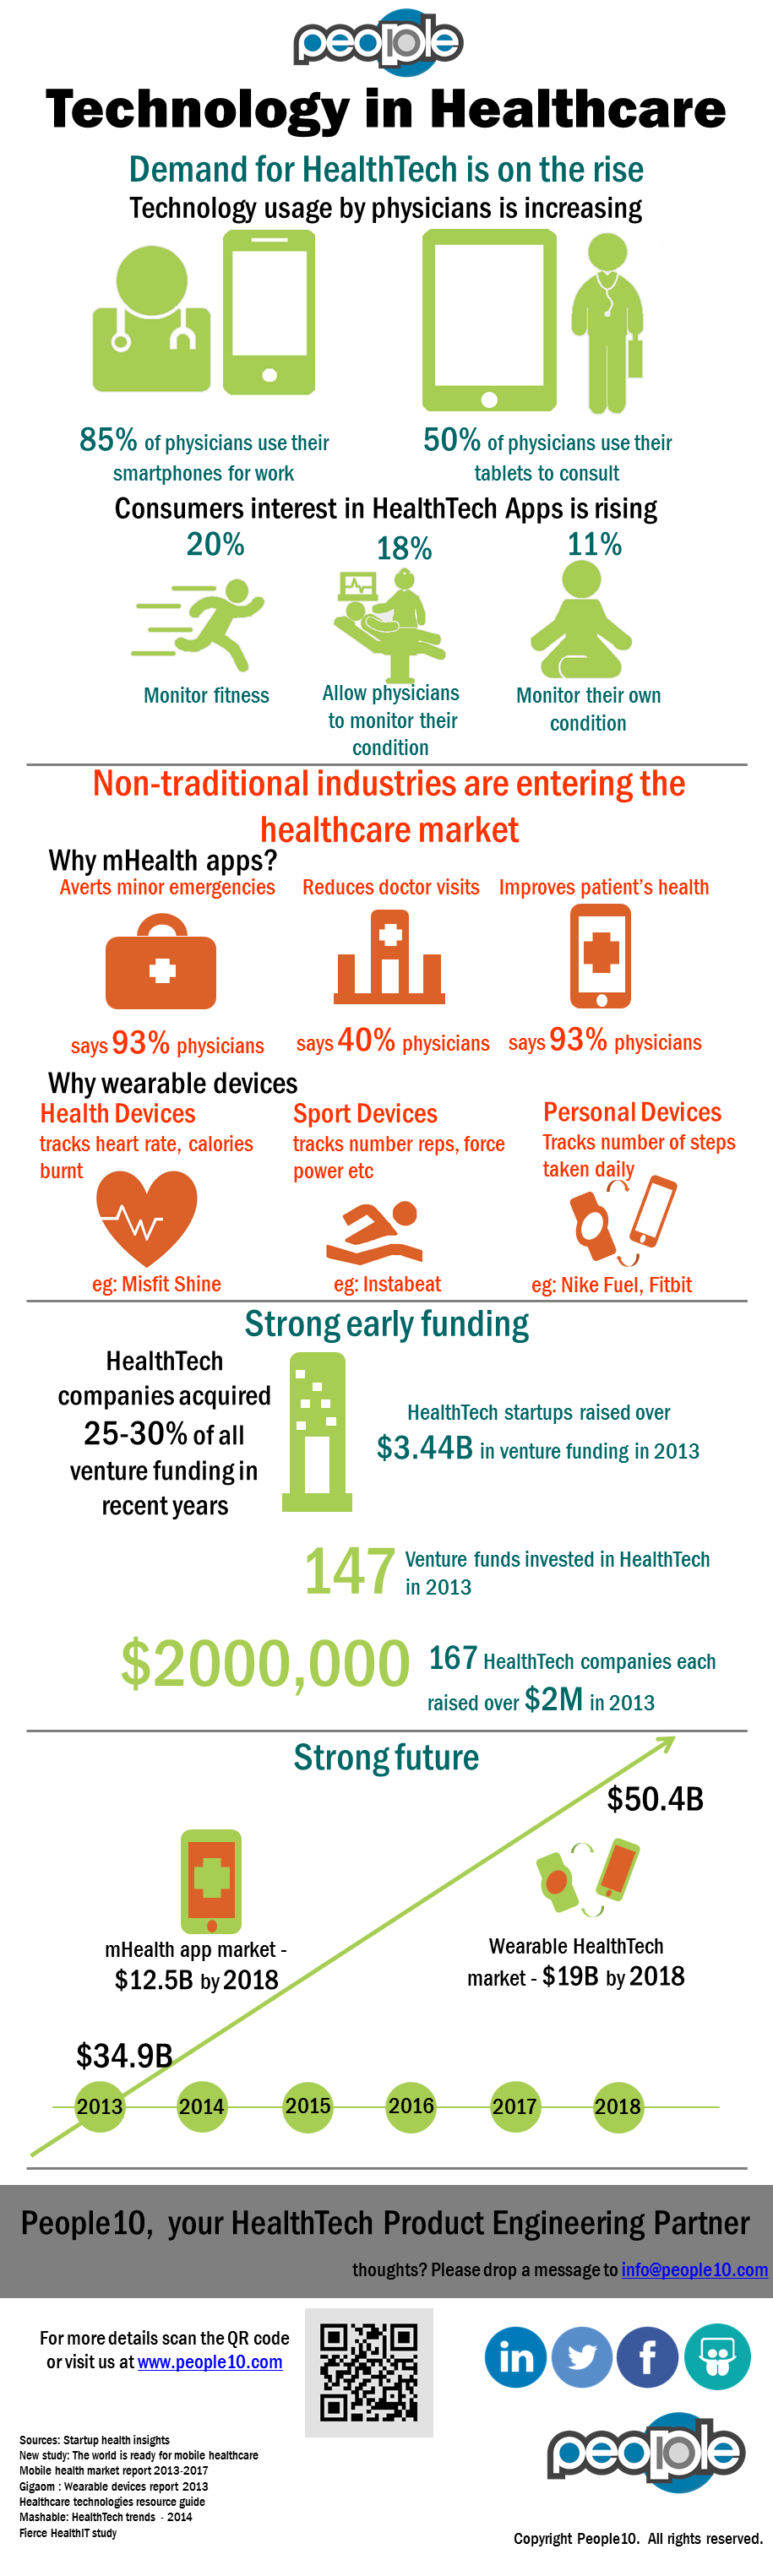 rise of technology in healthcare - People10